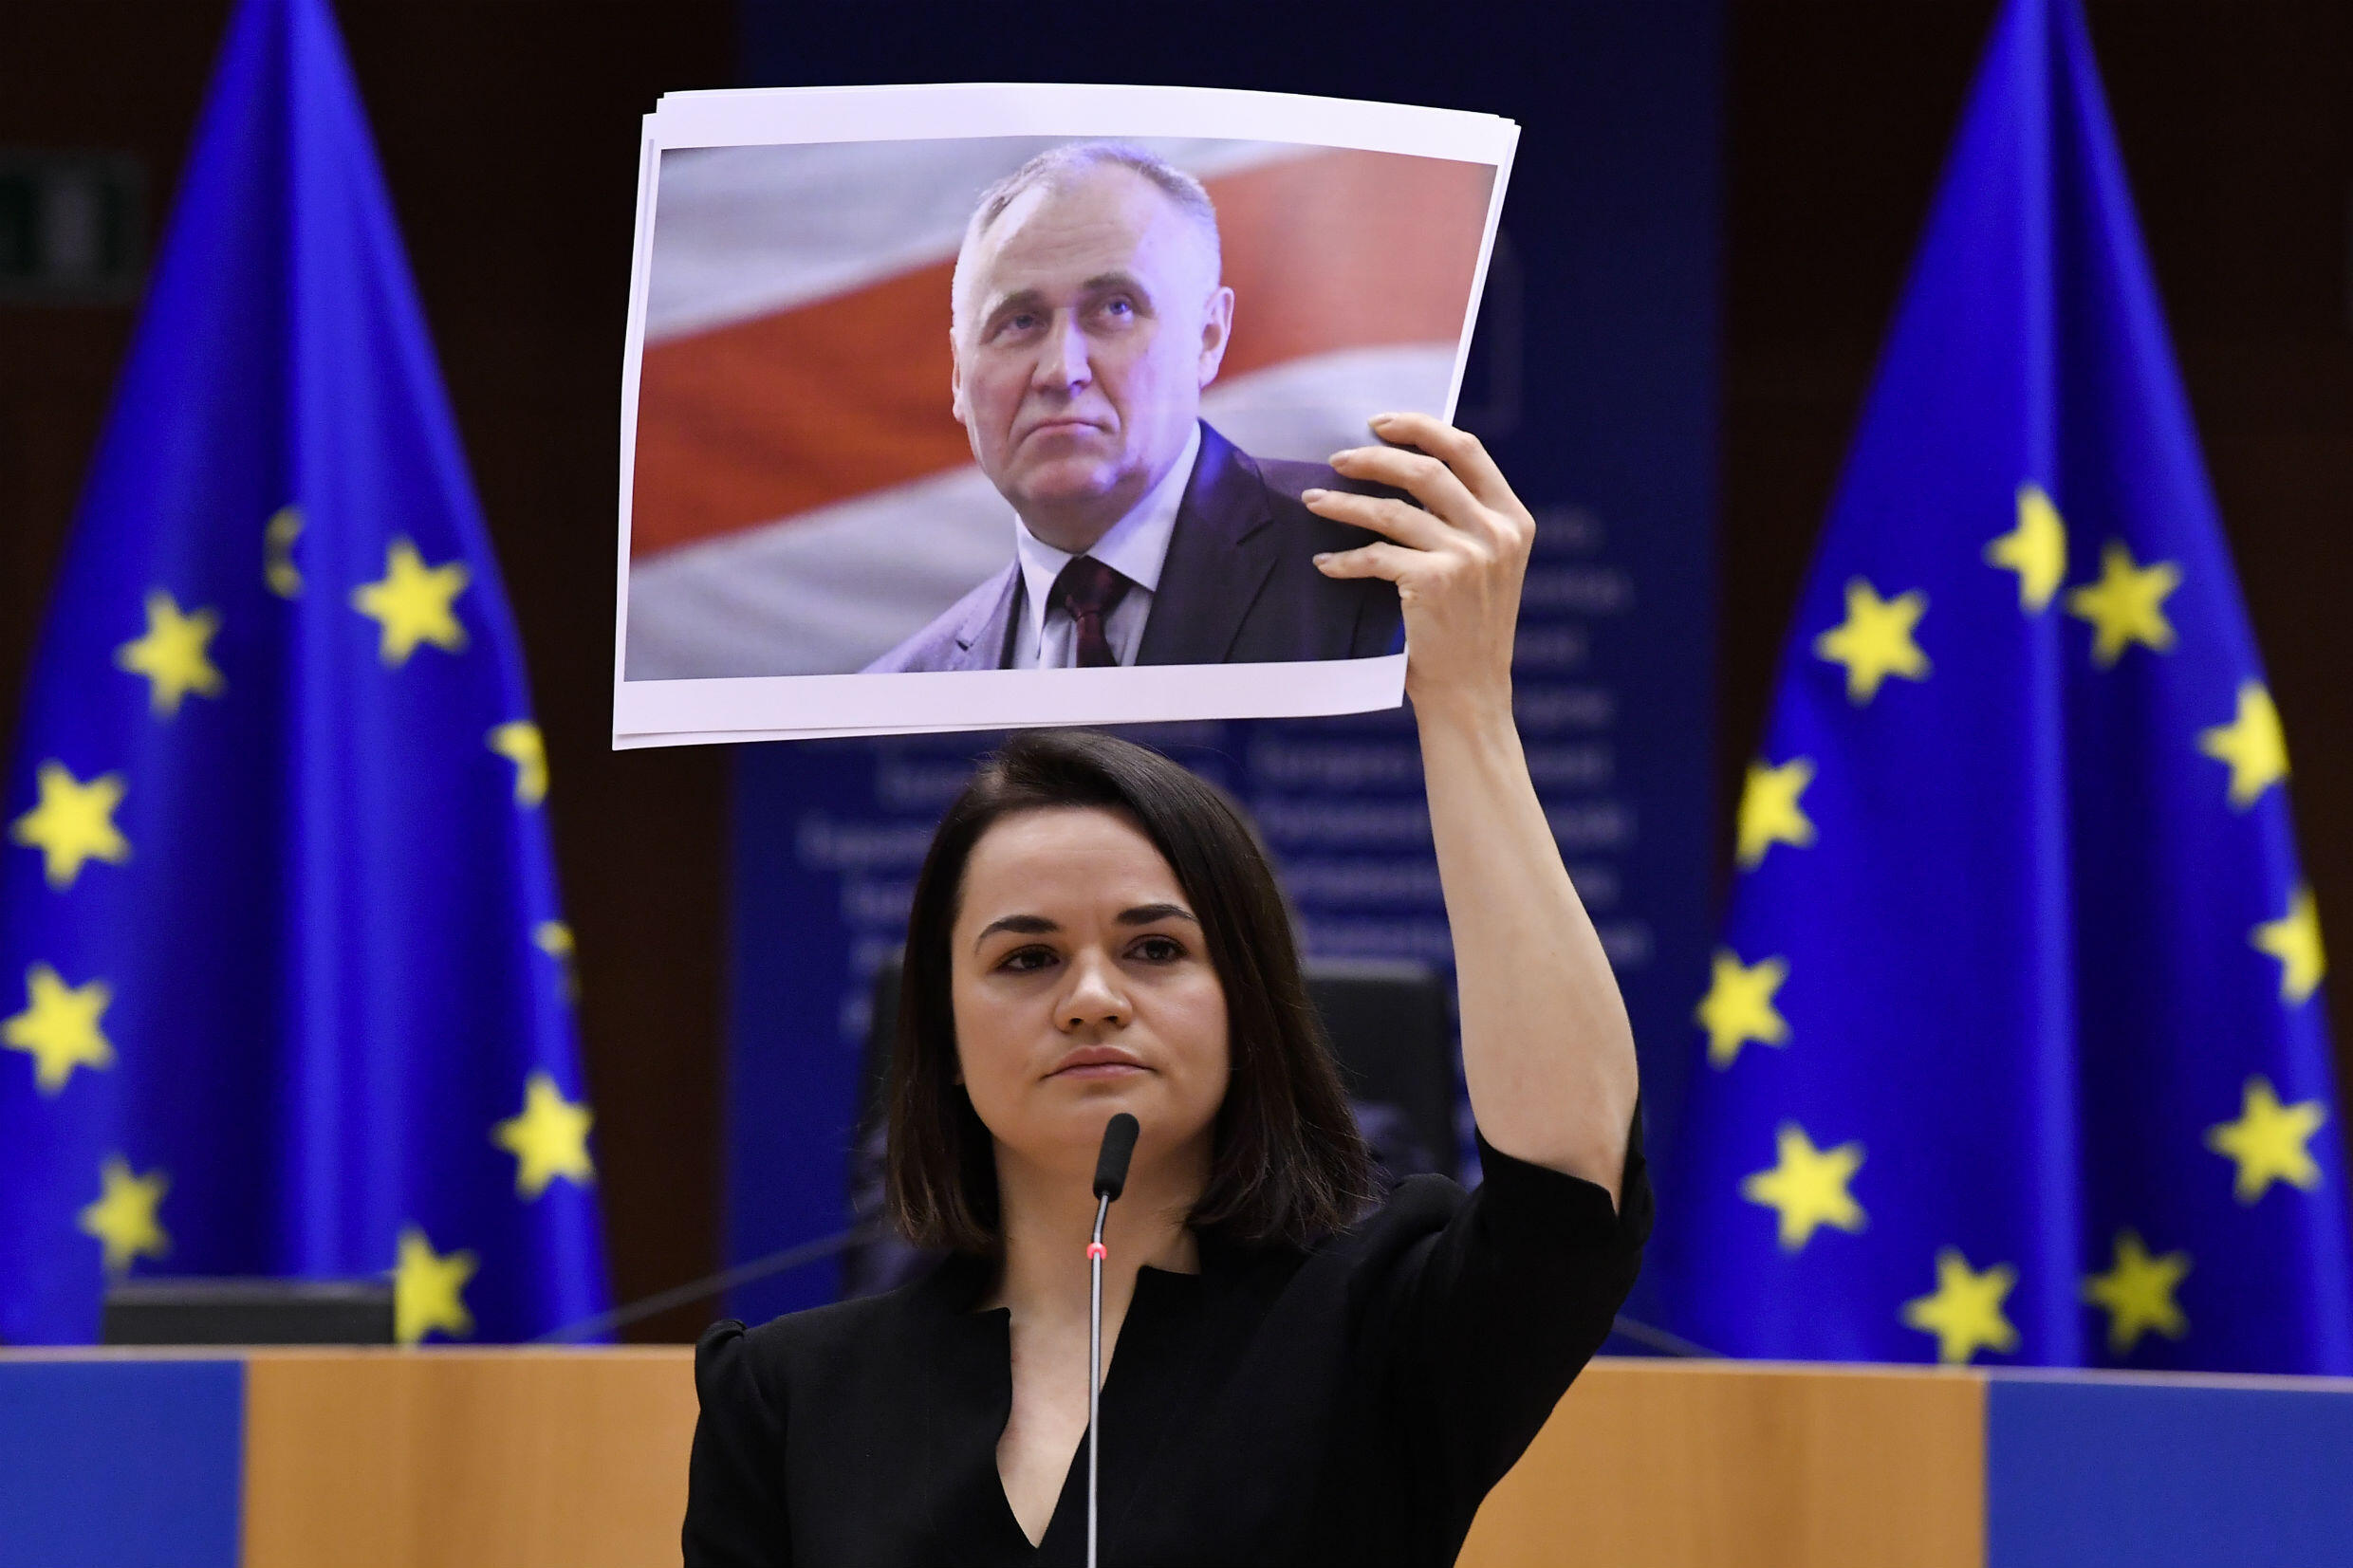 Belarus opposition leader Svetlana Tikhanovskaya holds a picture of Belarusian politician Mikalai Statkevich while receiving the Sakharov human rights prize at the European Parliament on December 16, 2020.